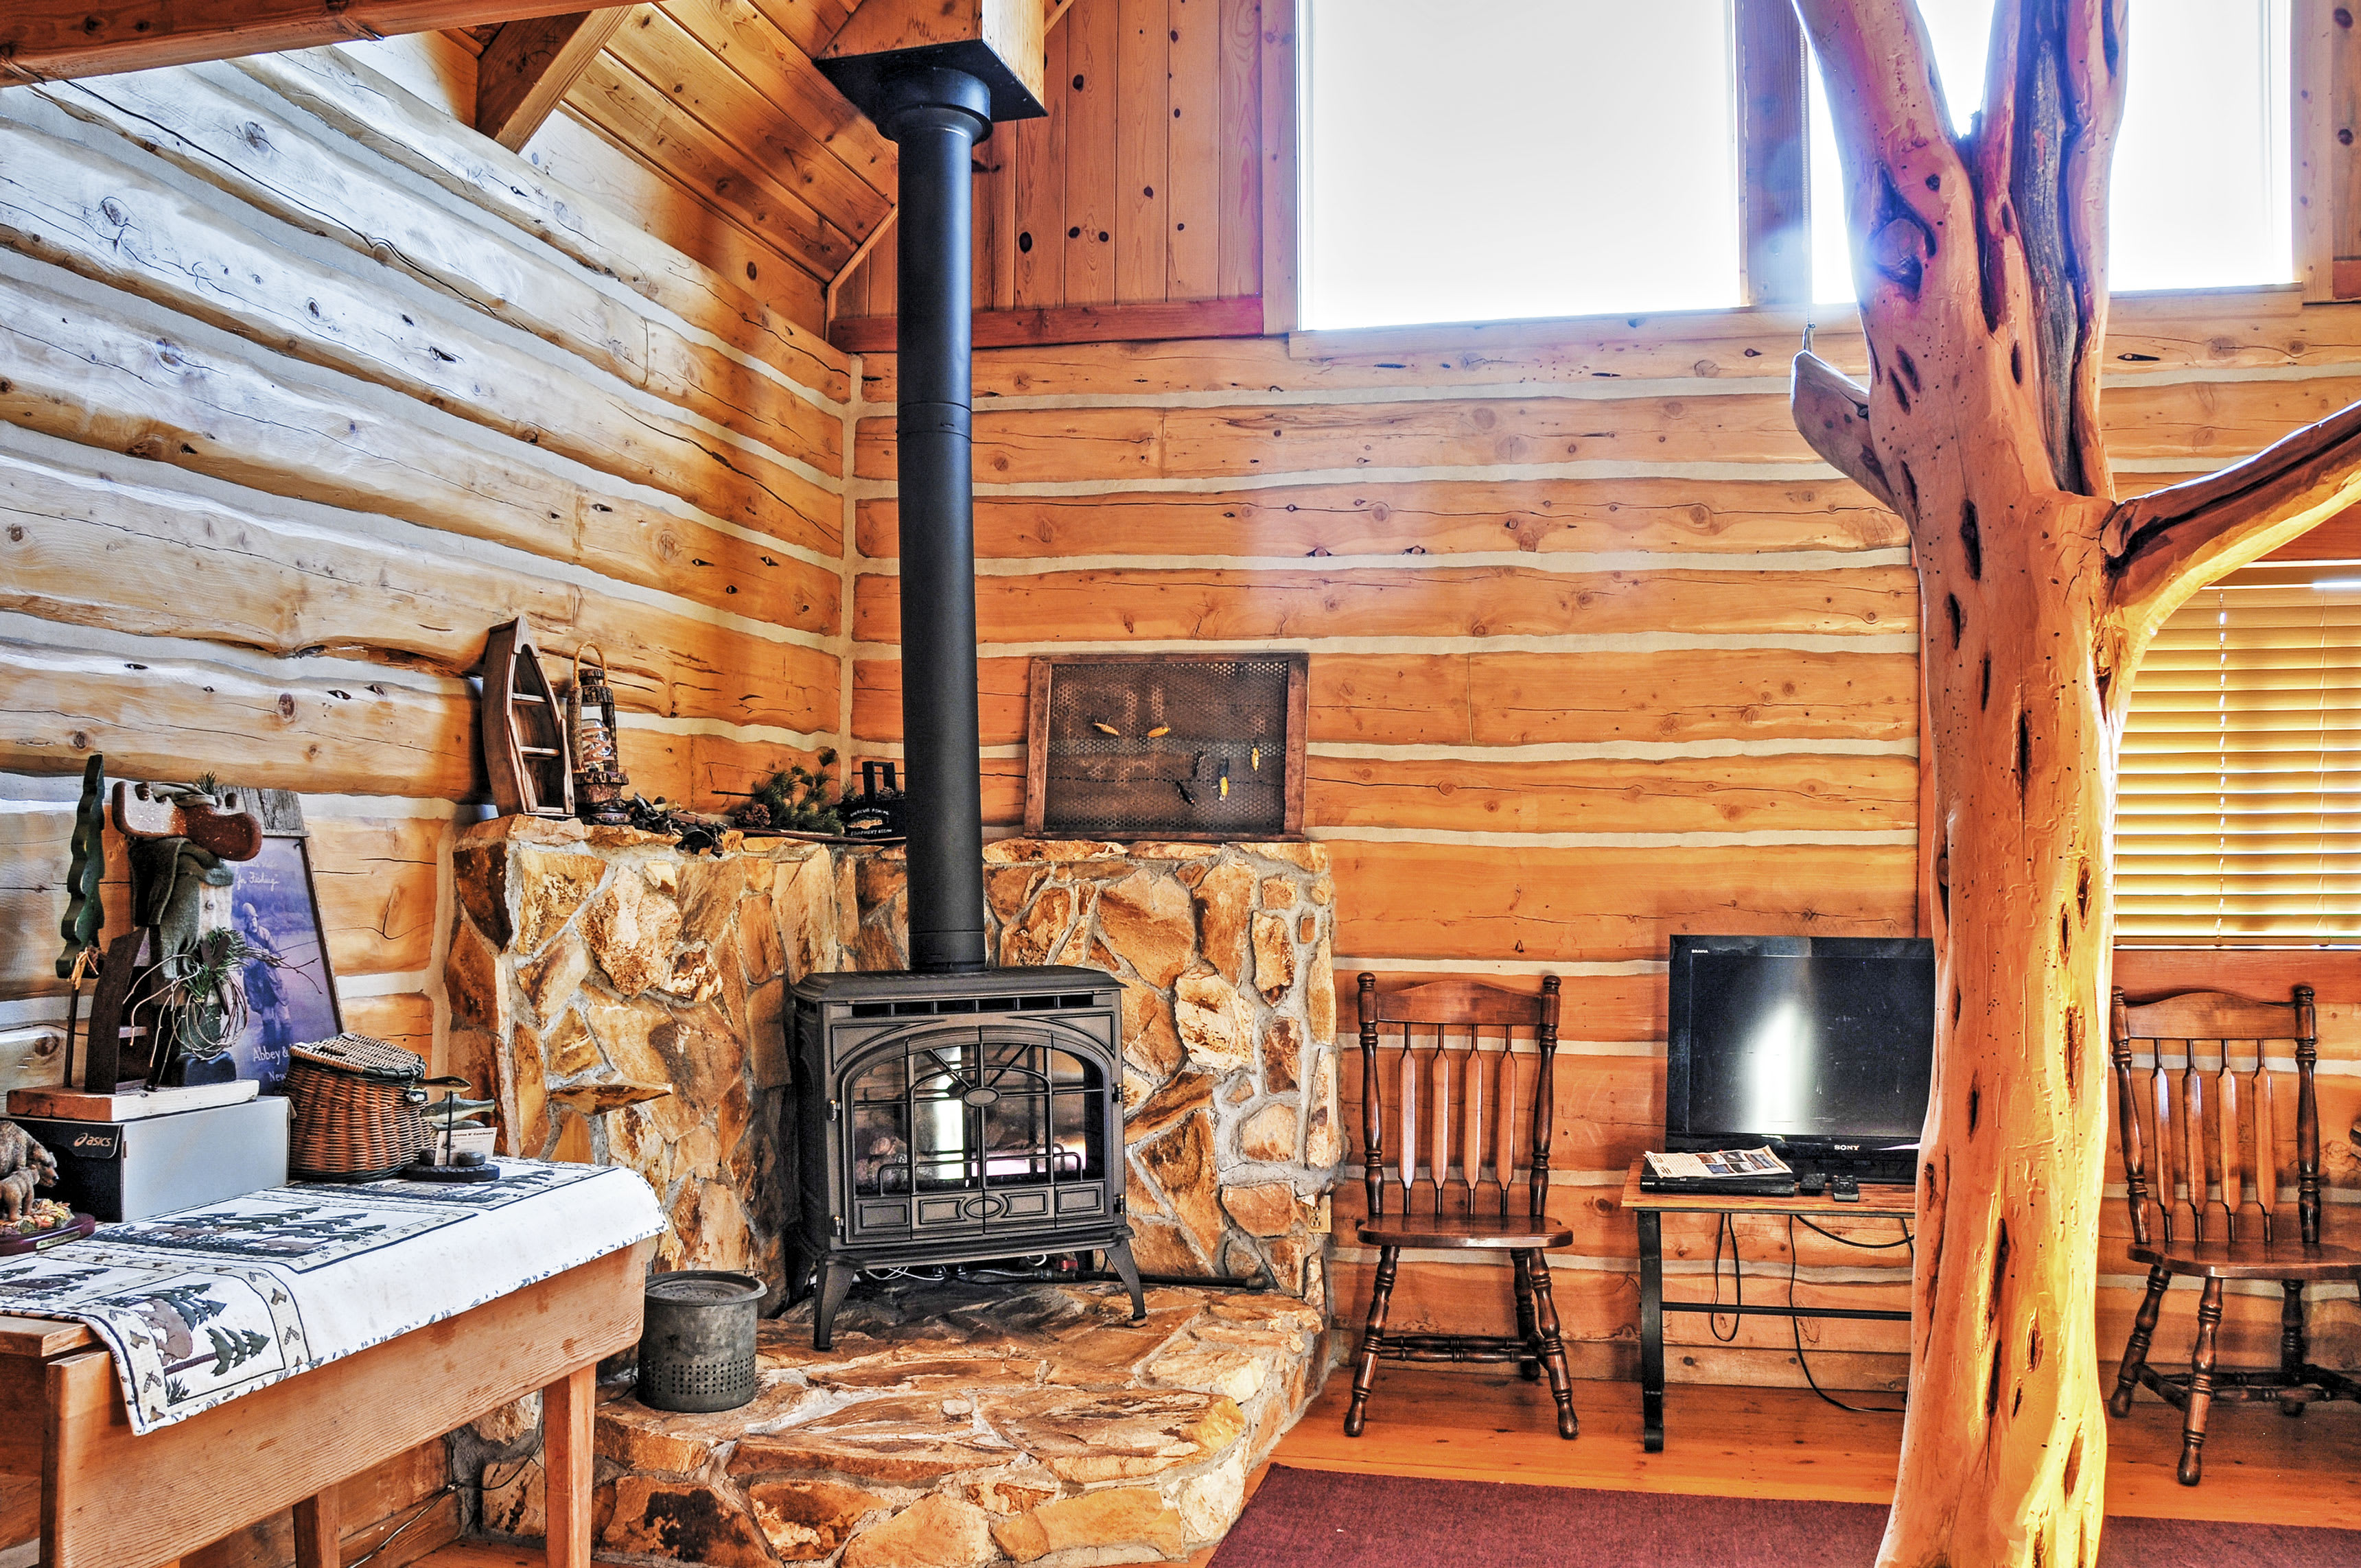 Warm your toes in front of the wood-burning stove.